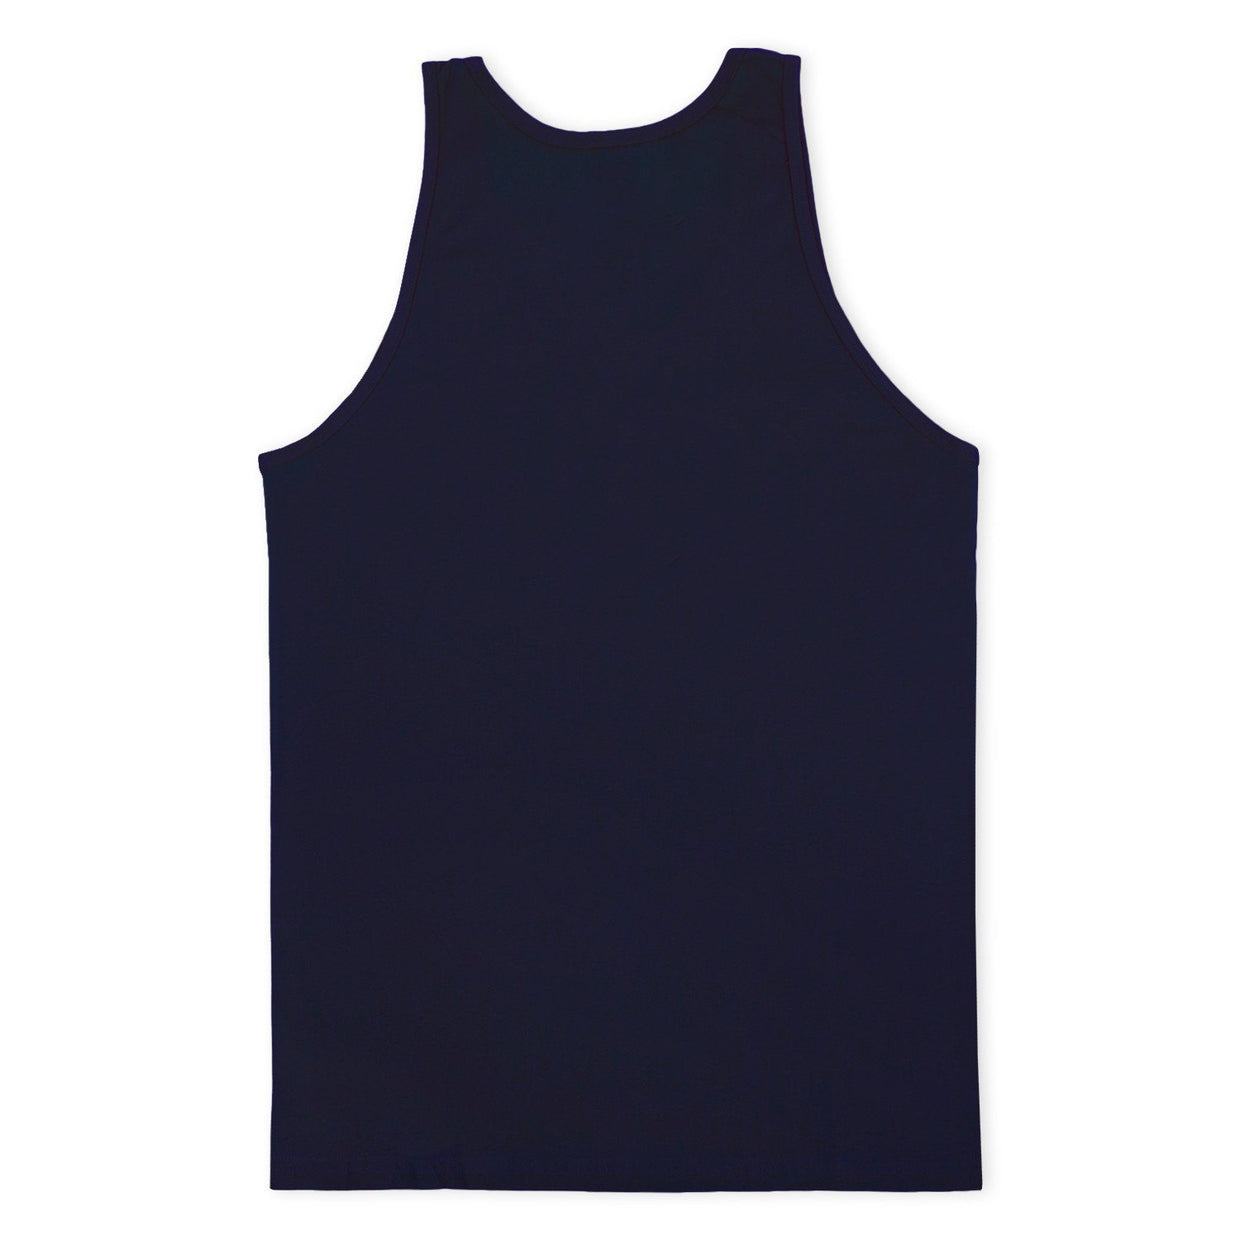 116 'Red Label' Tank - Navy